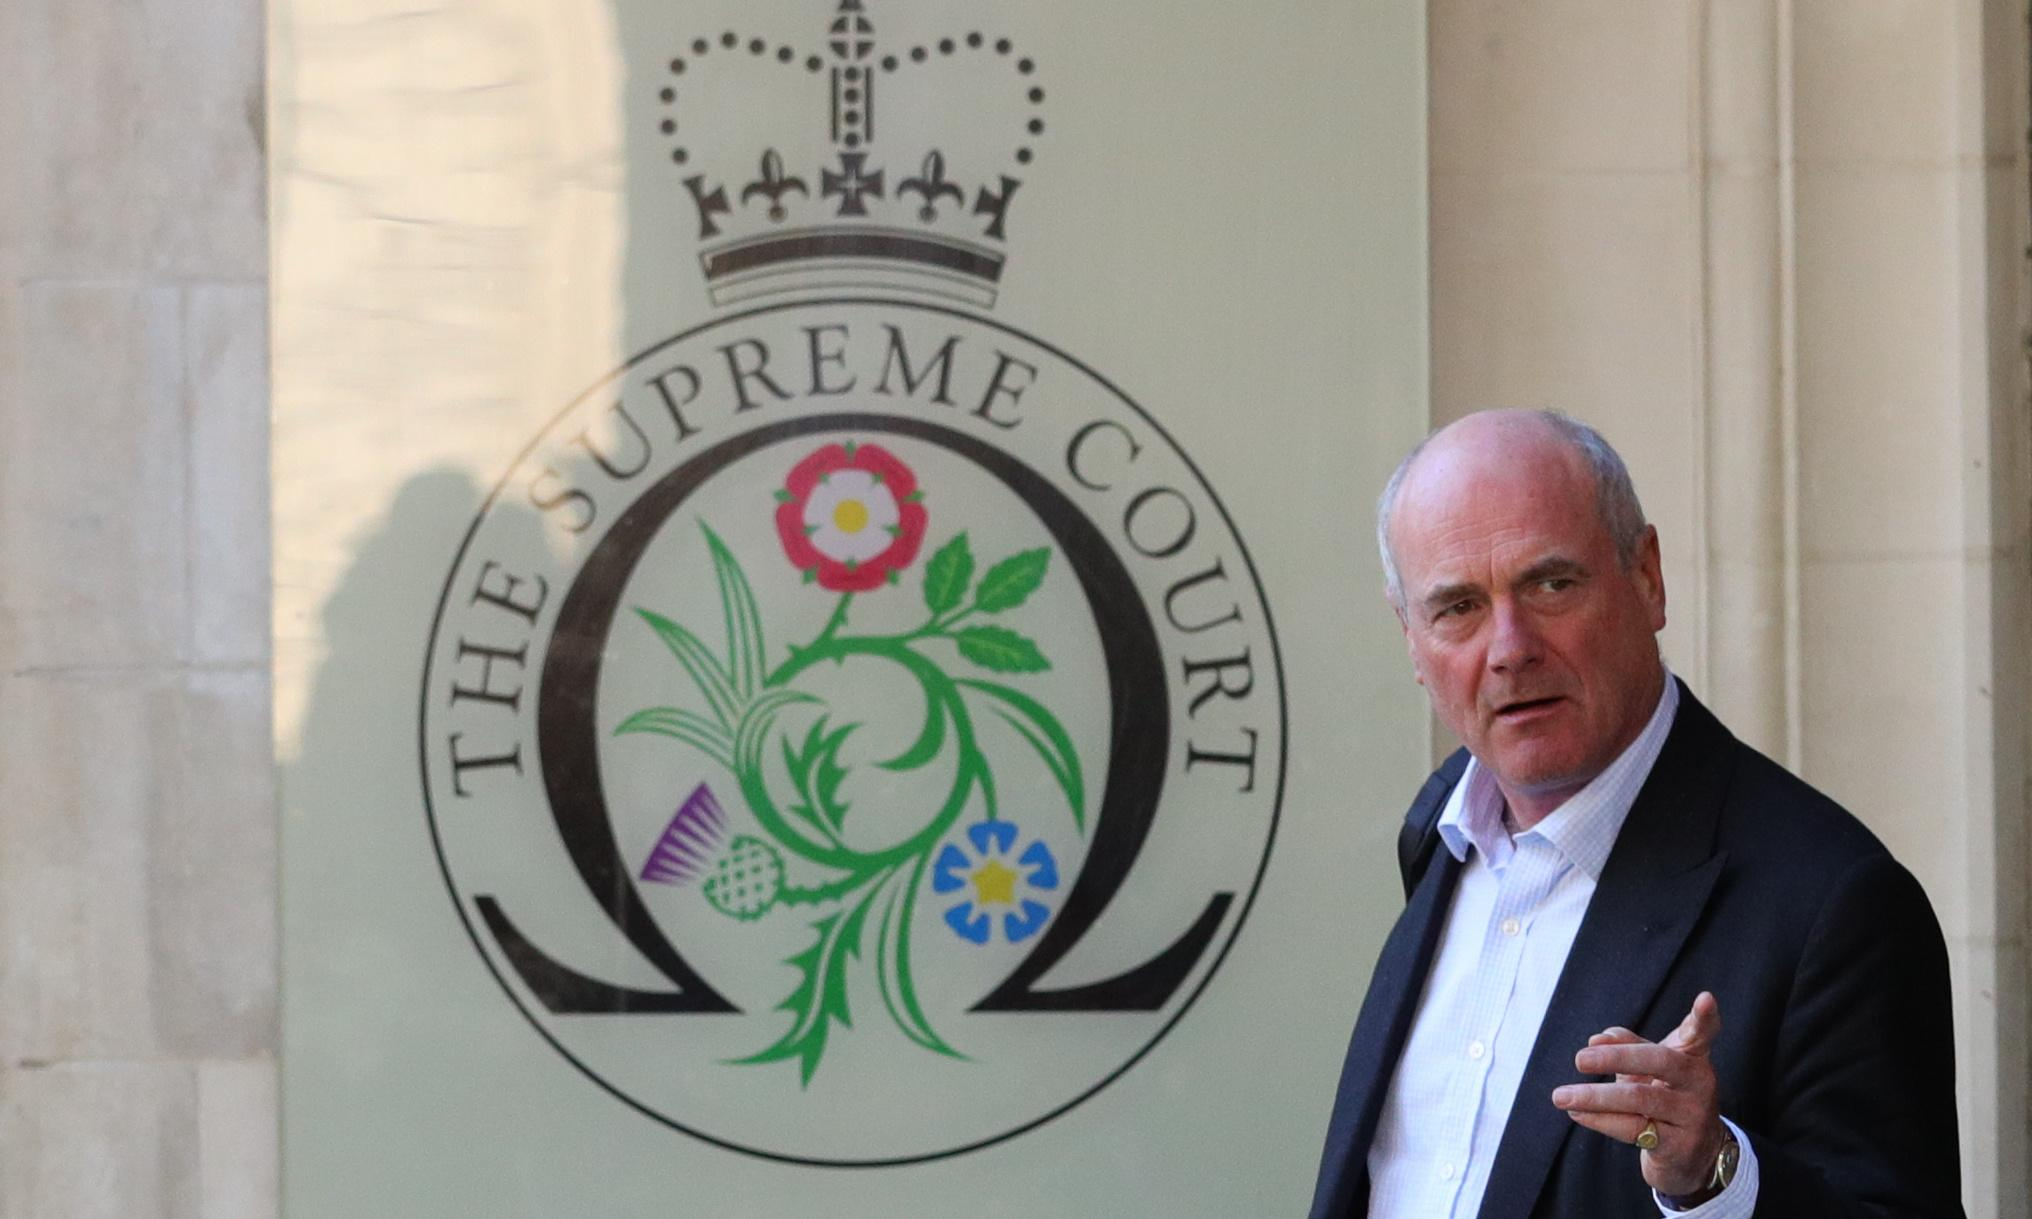 Eadie's defence of prorogation based on everything but the facts